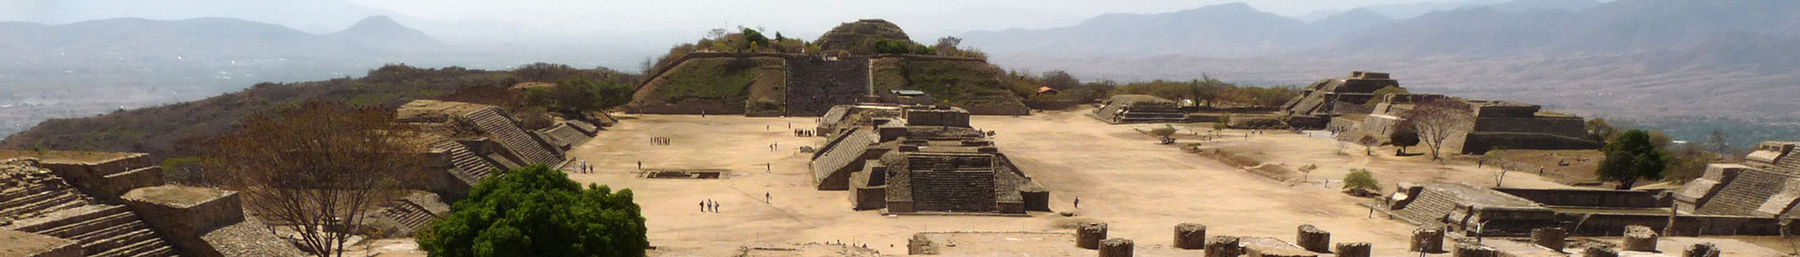 Monte Alban banner from north platform.jpg